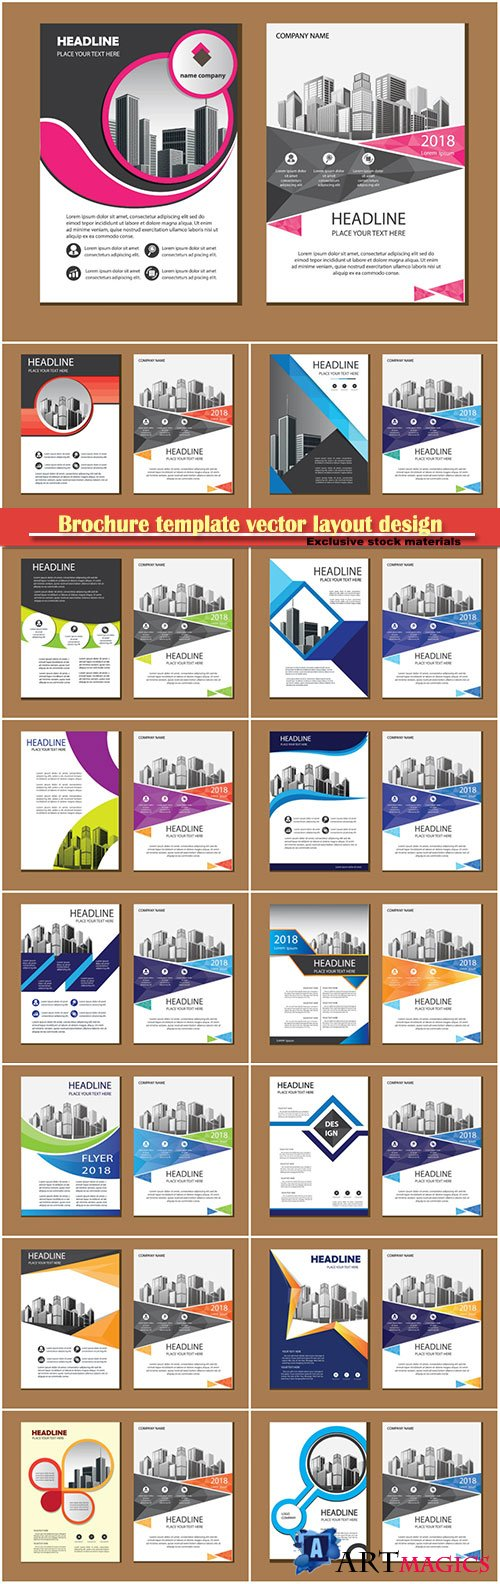 Brochure template vector layout design, corporate business annual report, magazine, flyer mockup # 164